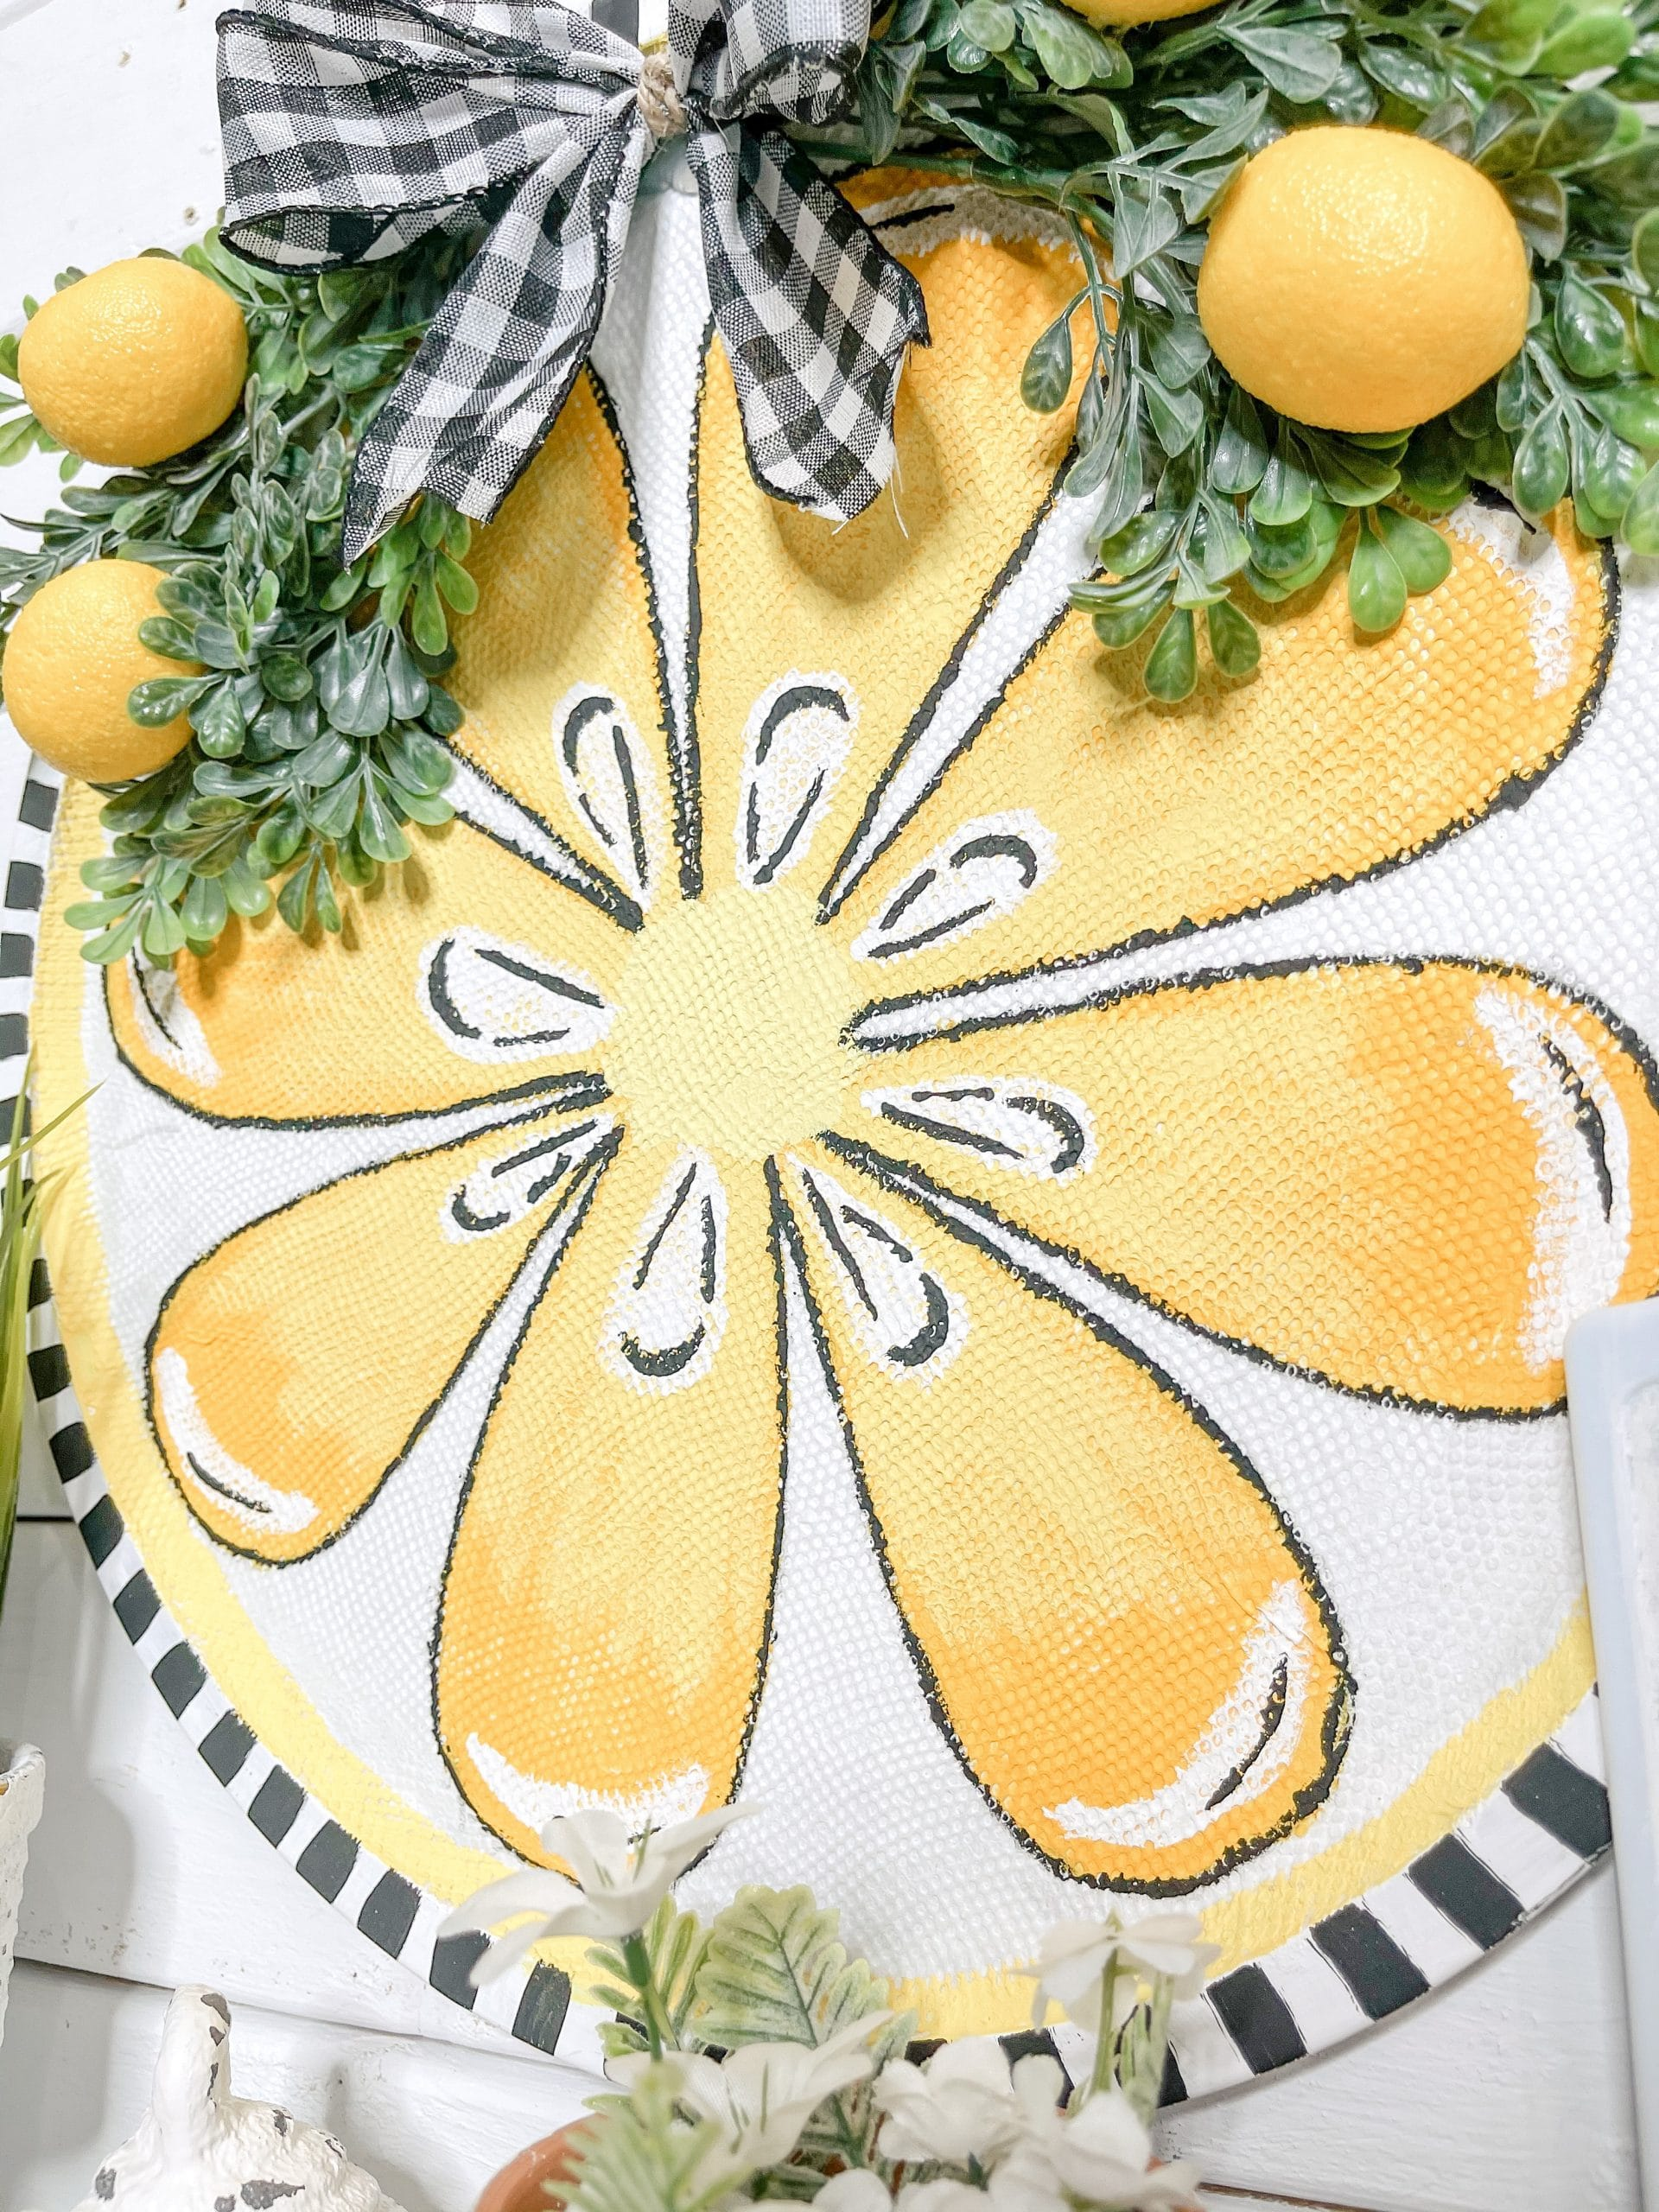 Dollar Tree Pizza Pan DIY Lemon Decor